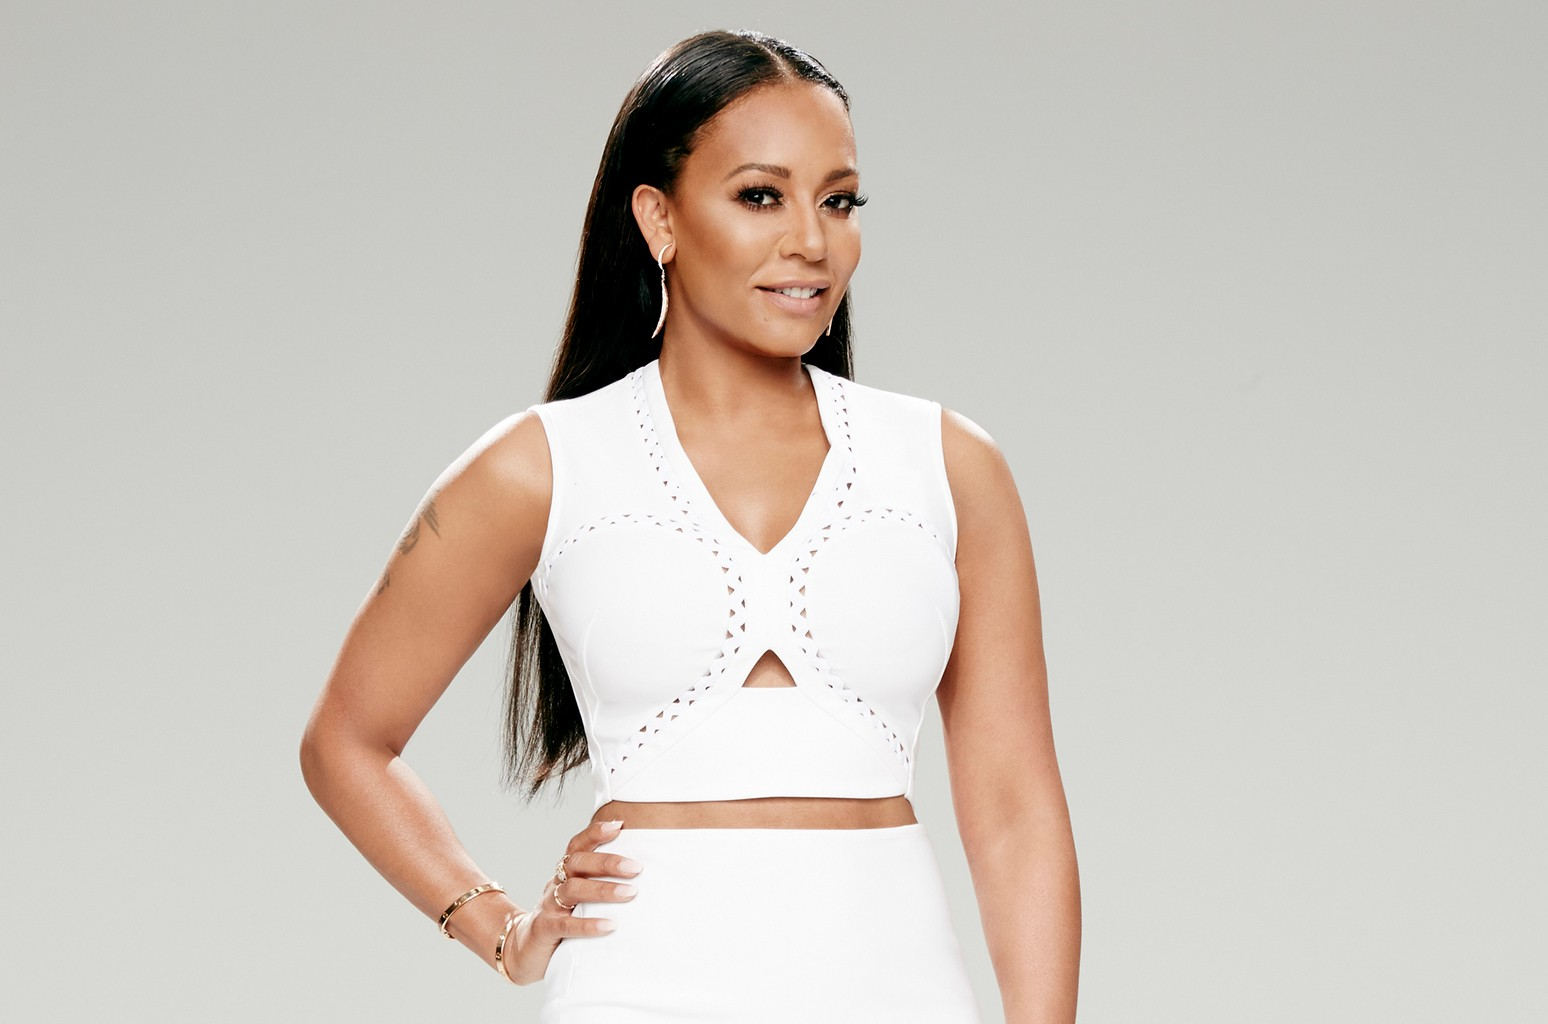 Mel B photographed for America's Got Talent in 2016.